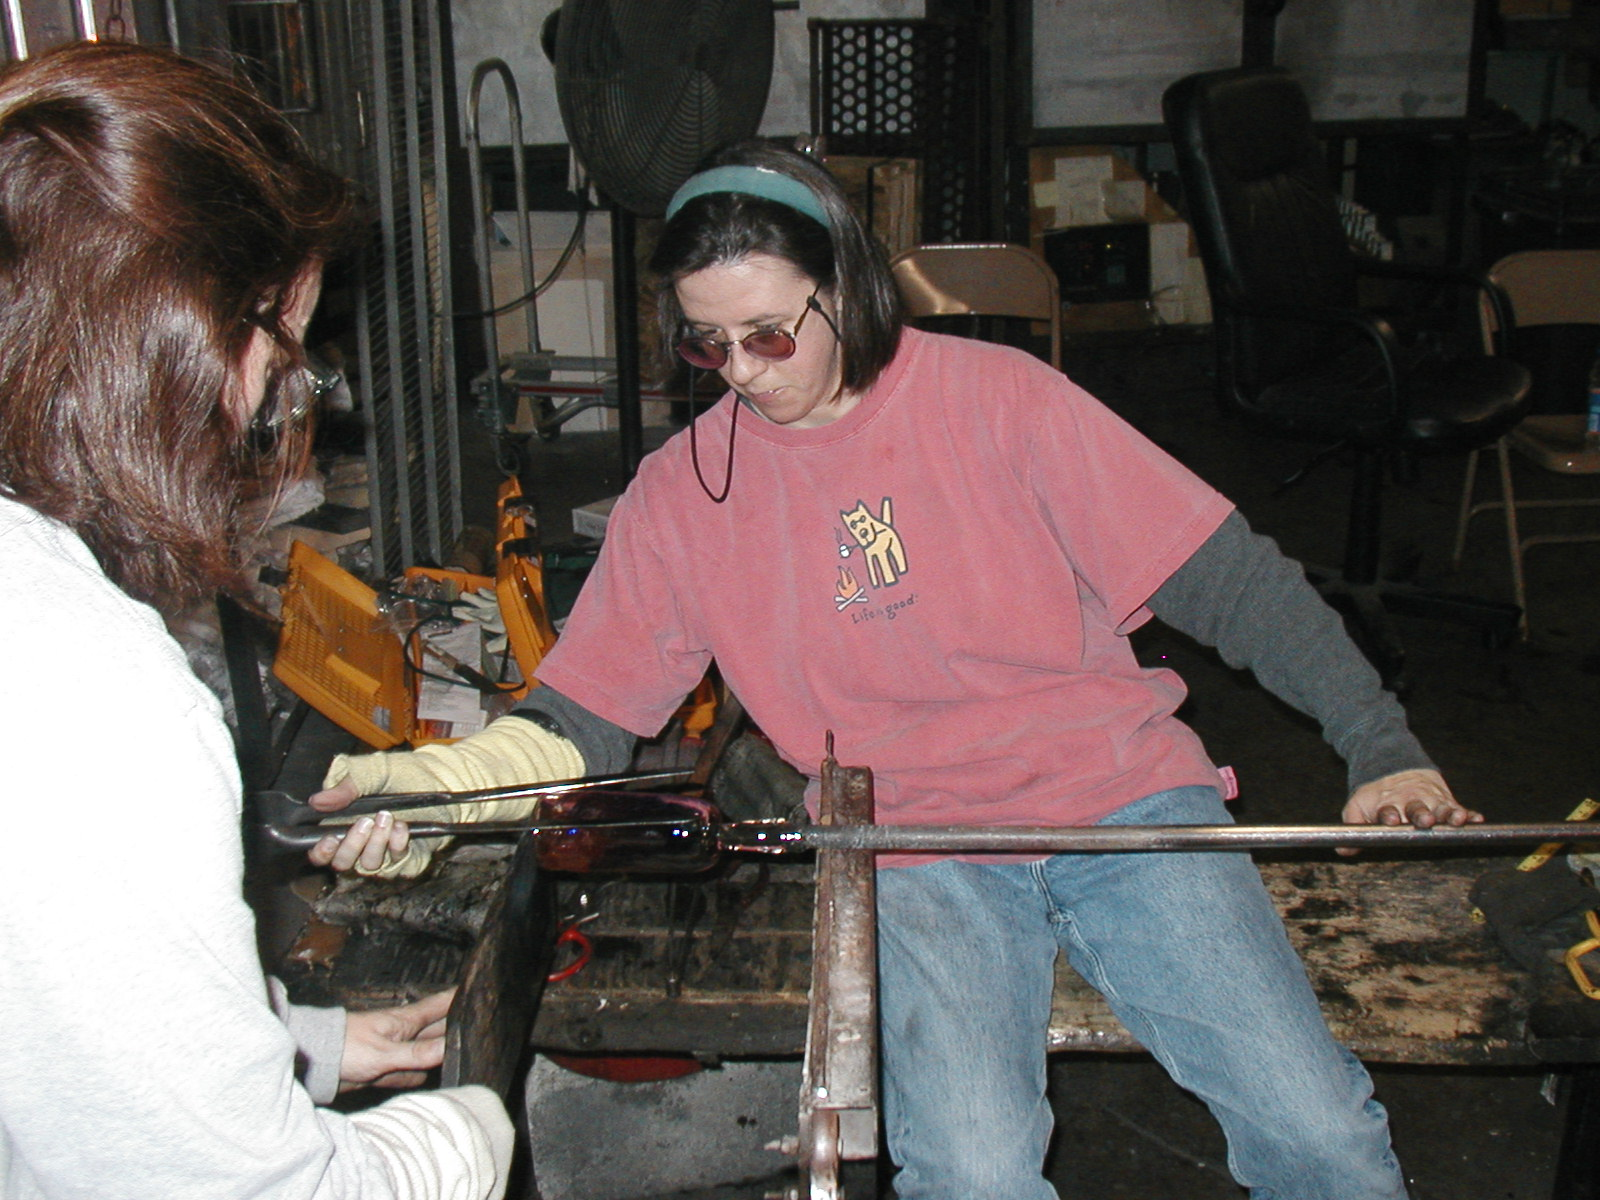 Glassblower.Info - Joel Bless Glasslight Glassblowing class January 18 2004 #141